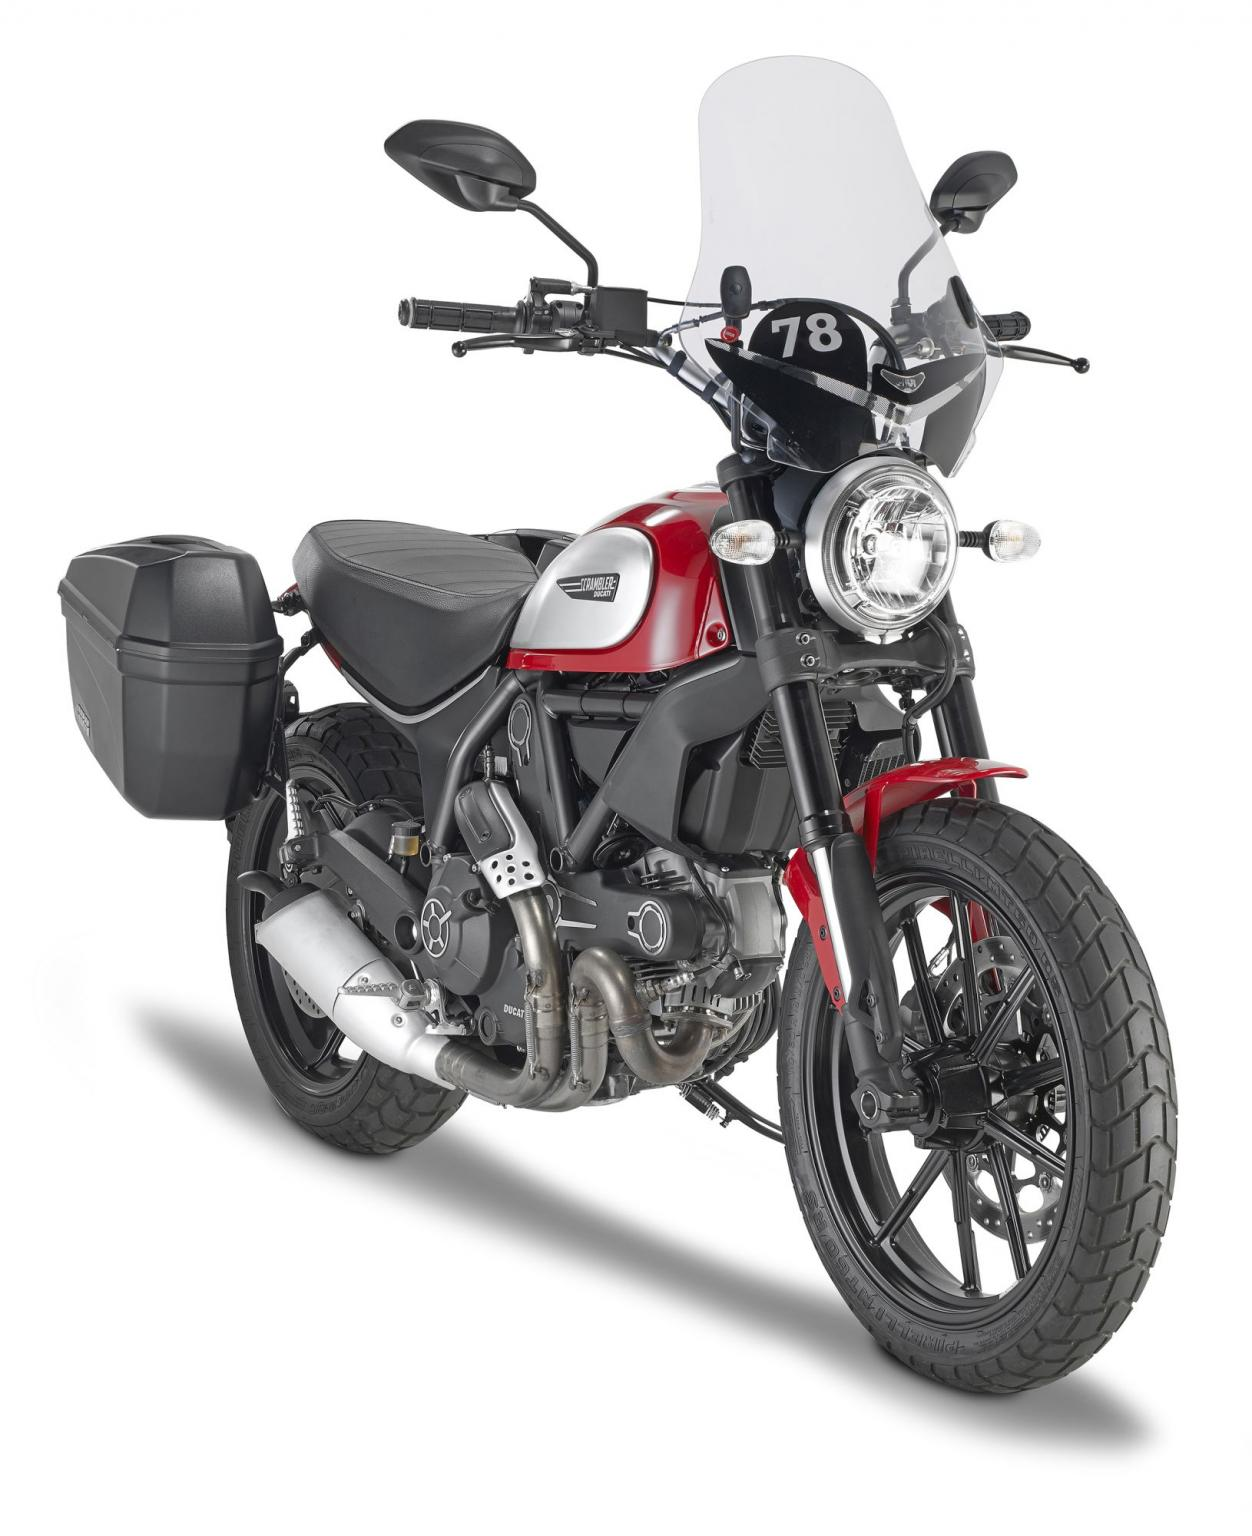 givi zubeh r f r ducati scrambler 800 2016 motorrad fotos. Black Bedroom Furniture Sets. Home Design Ideas